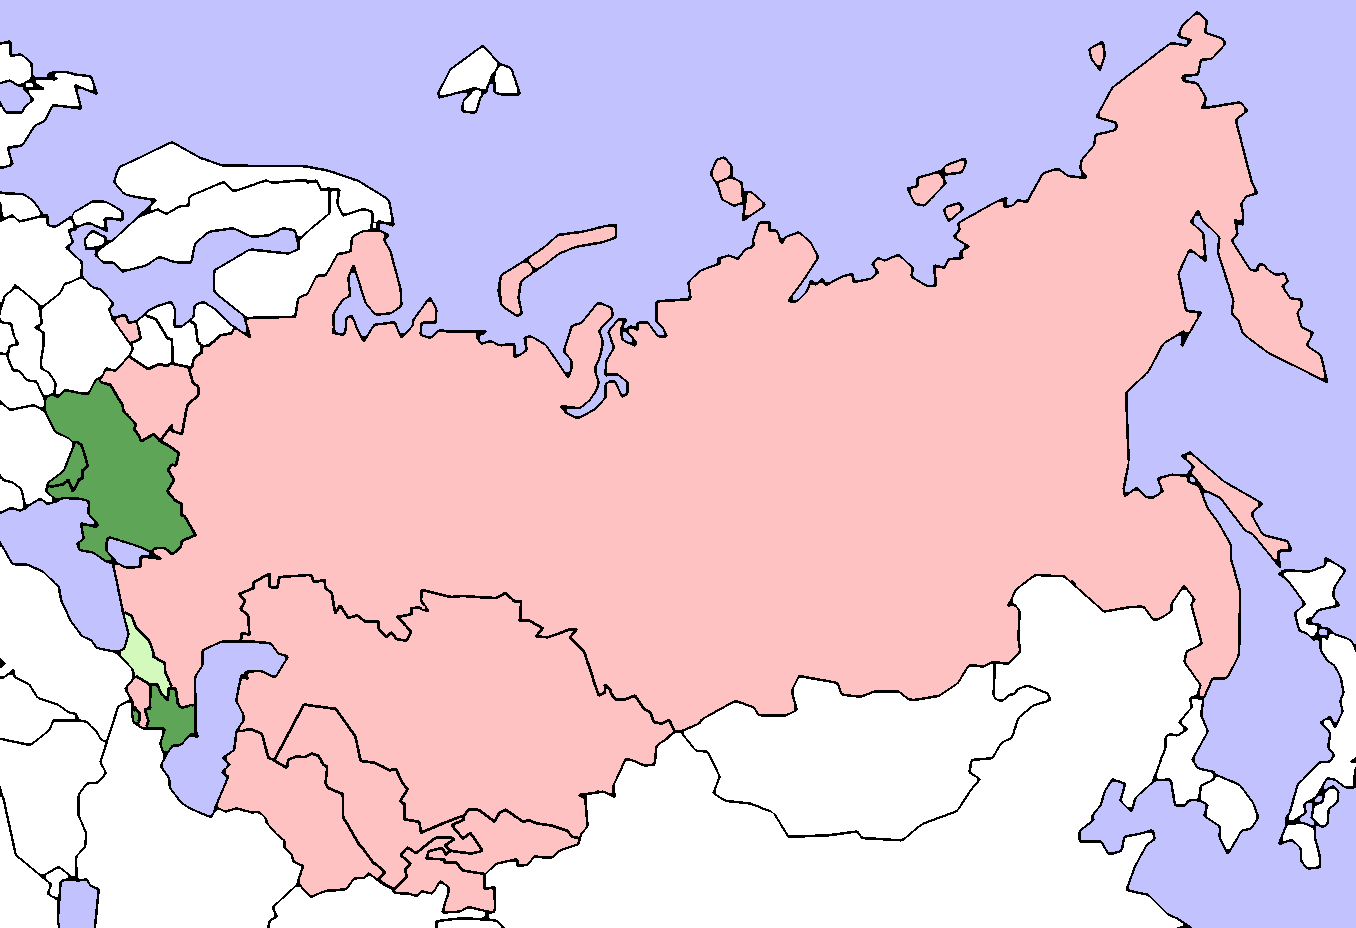 an essay on russia and commonwealth of independent states or cis The commonwealth of independent states (cis) is an international organisation  comprised of 12  december 1991 the elected leaders of russia, ukraine and  belarus signed an  as far as article 1 of the 1993 charter of the  commonwealth.